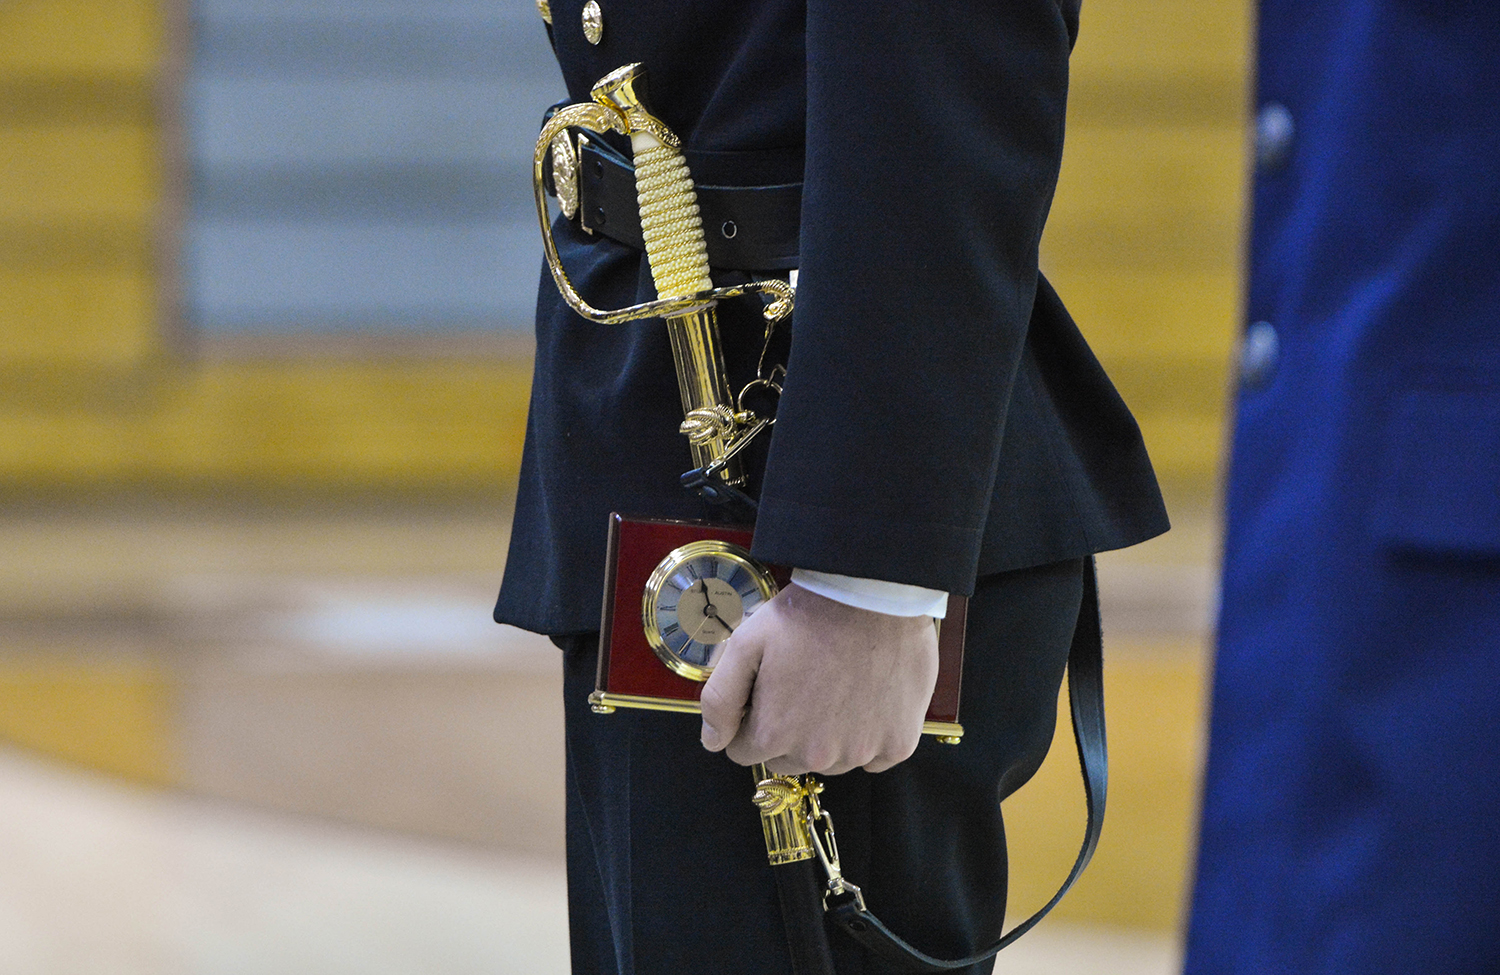 ROTC student holds sheathed weapon and clock.